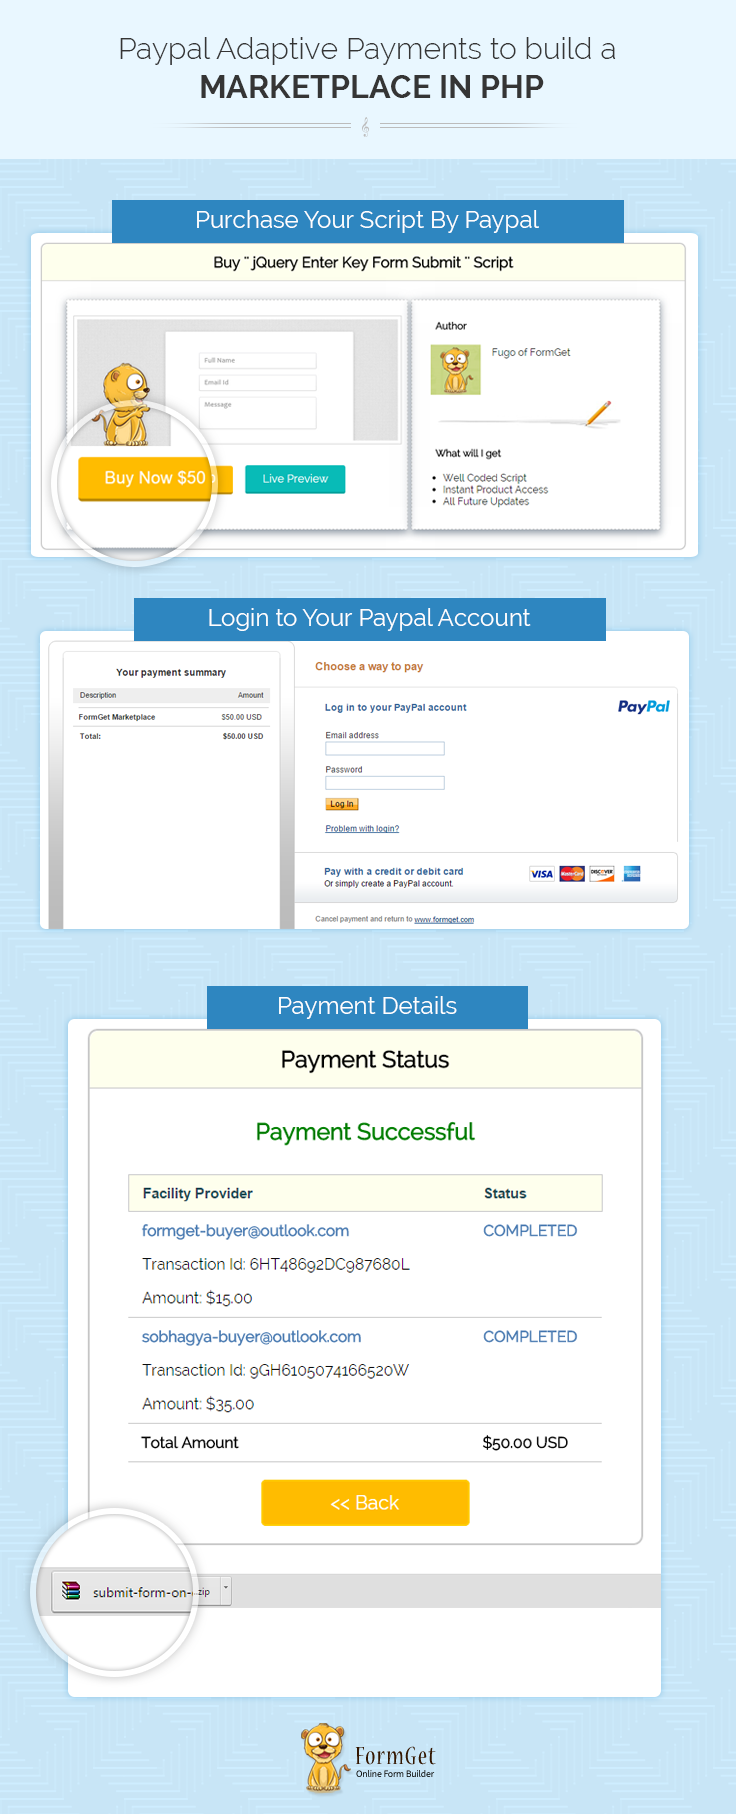 paypal-chained-adaptive-payments-php